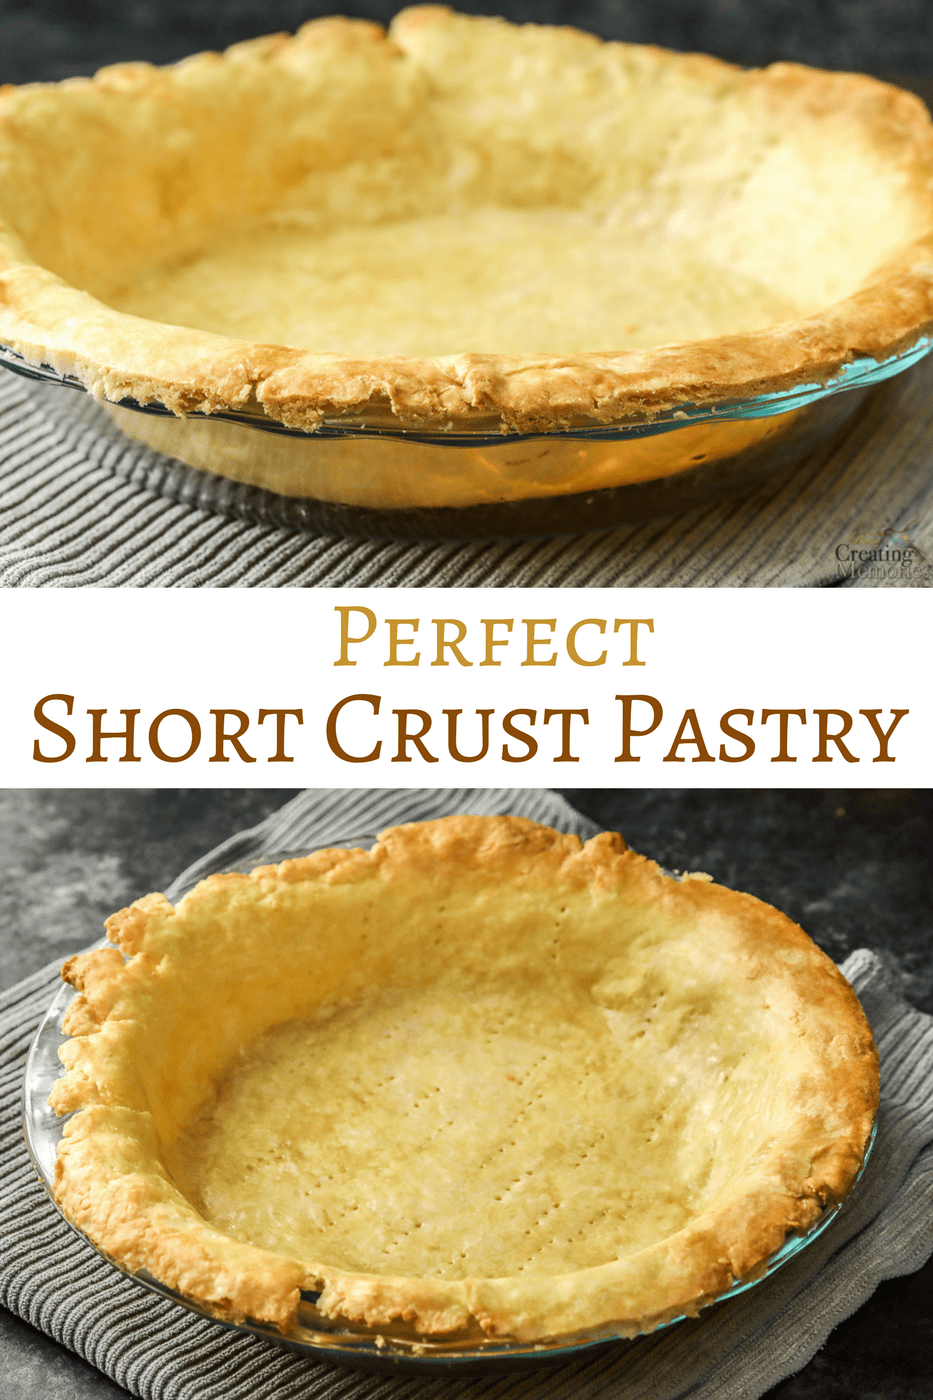 Every Baker should know how to make a Shortcrust pastry recipe. Made basic or sweet, this simple recipe with egg and butter can be used for a variety of the best sweet and savoury dishes, from pies, tarts, quiche, and biscuits just for a few ideas. while being easy to use, and perfectly crisp and flaky.